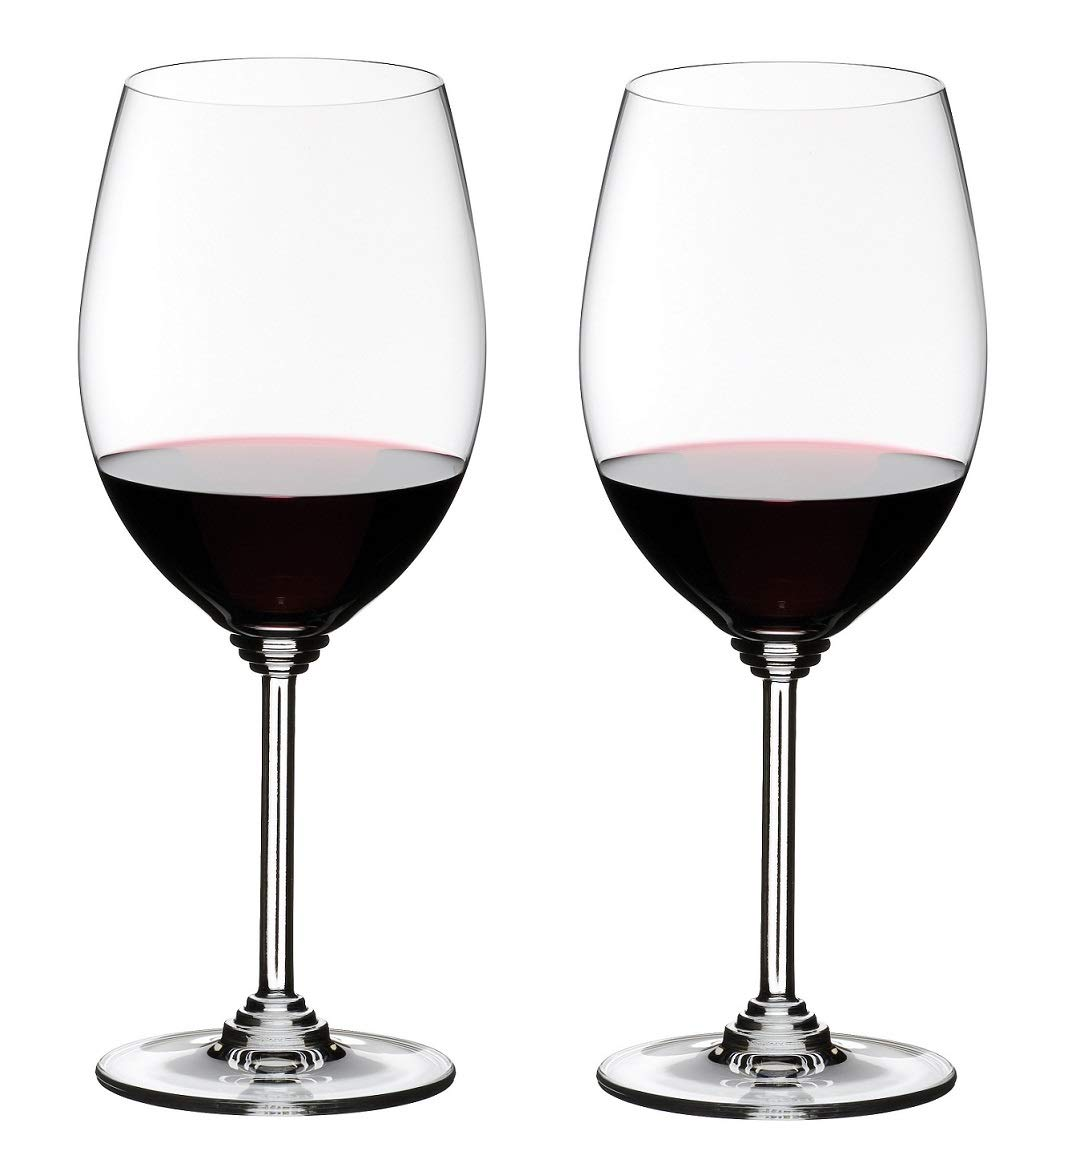 Riedel Wine Series Cabernet/Merlot Glass, Set of 2 by Riedel